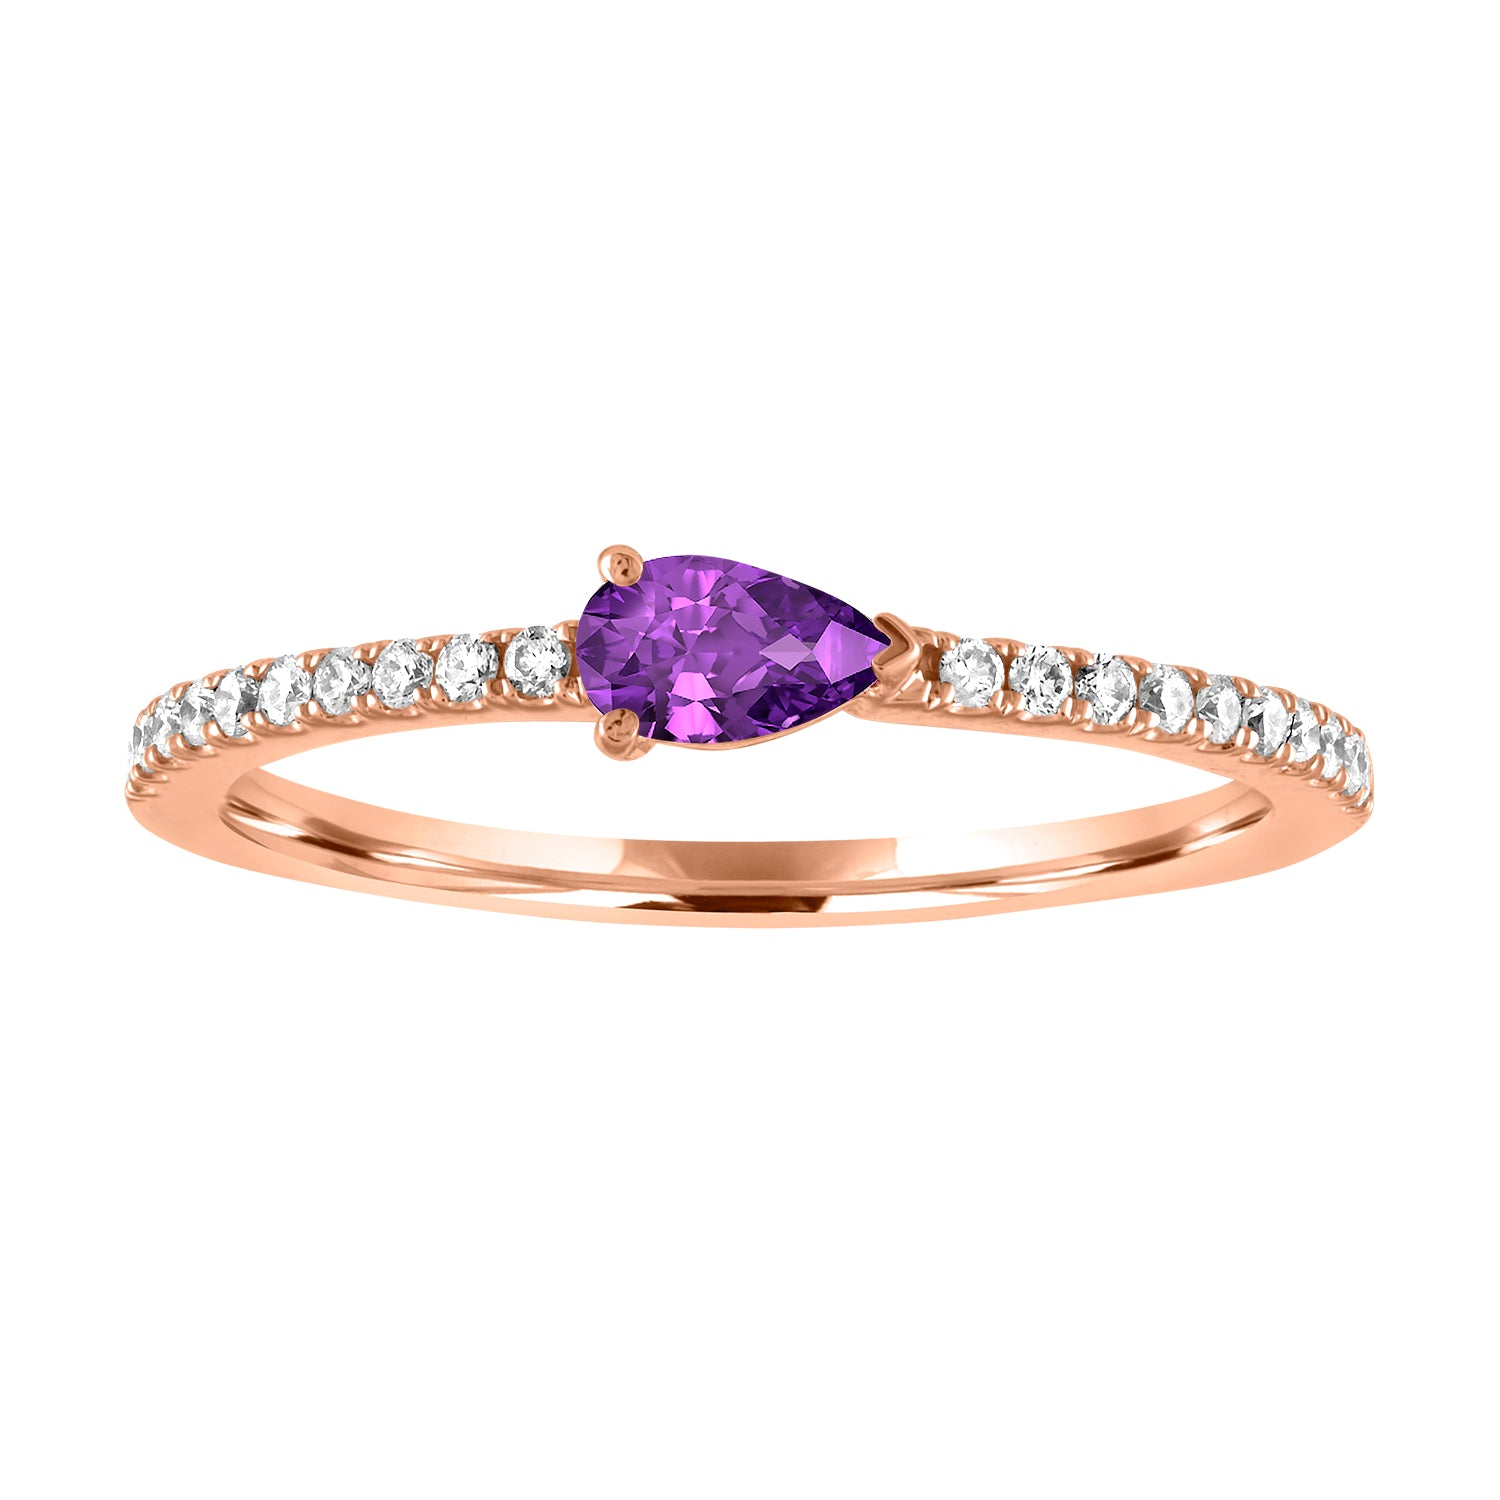 Layla ring with amethyst pear